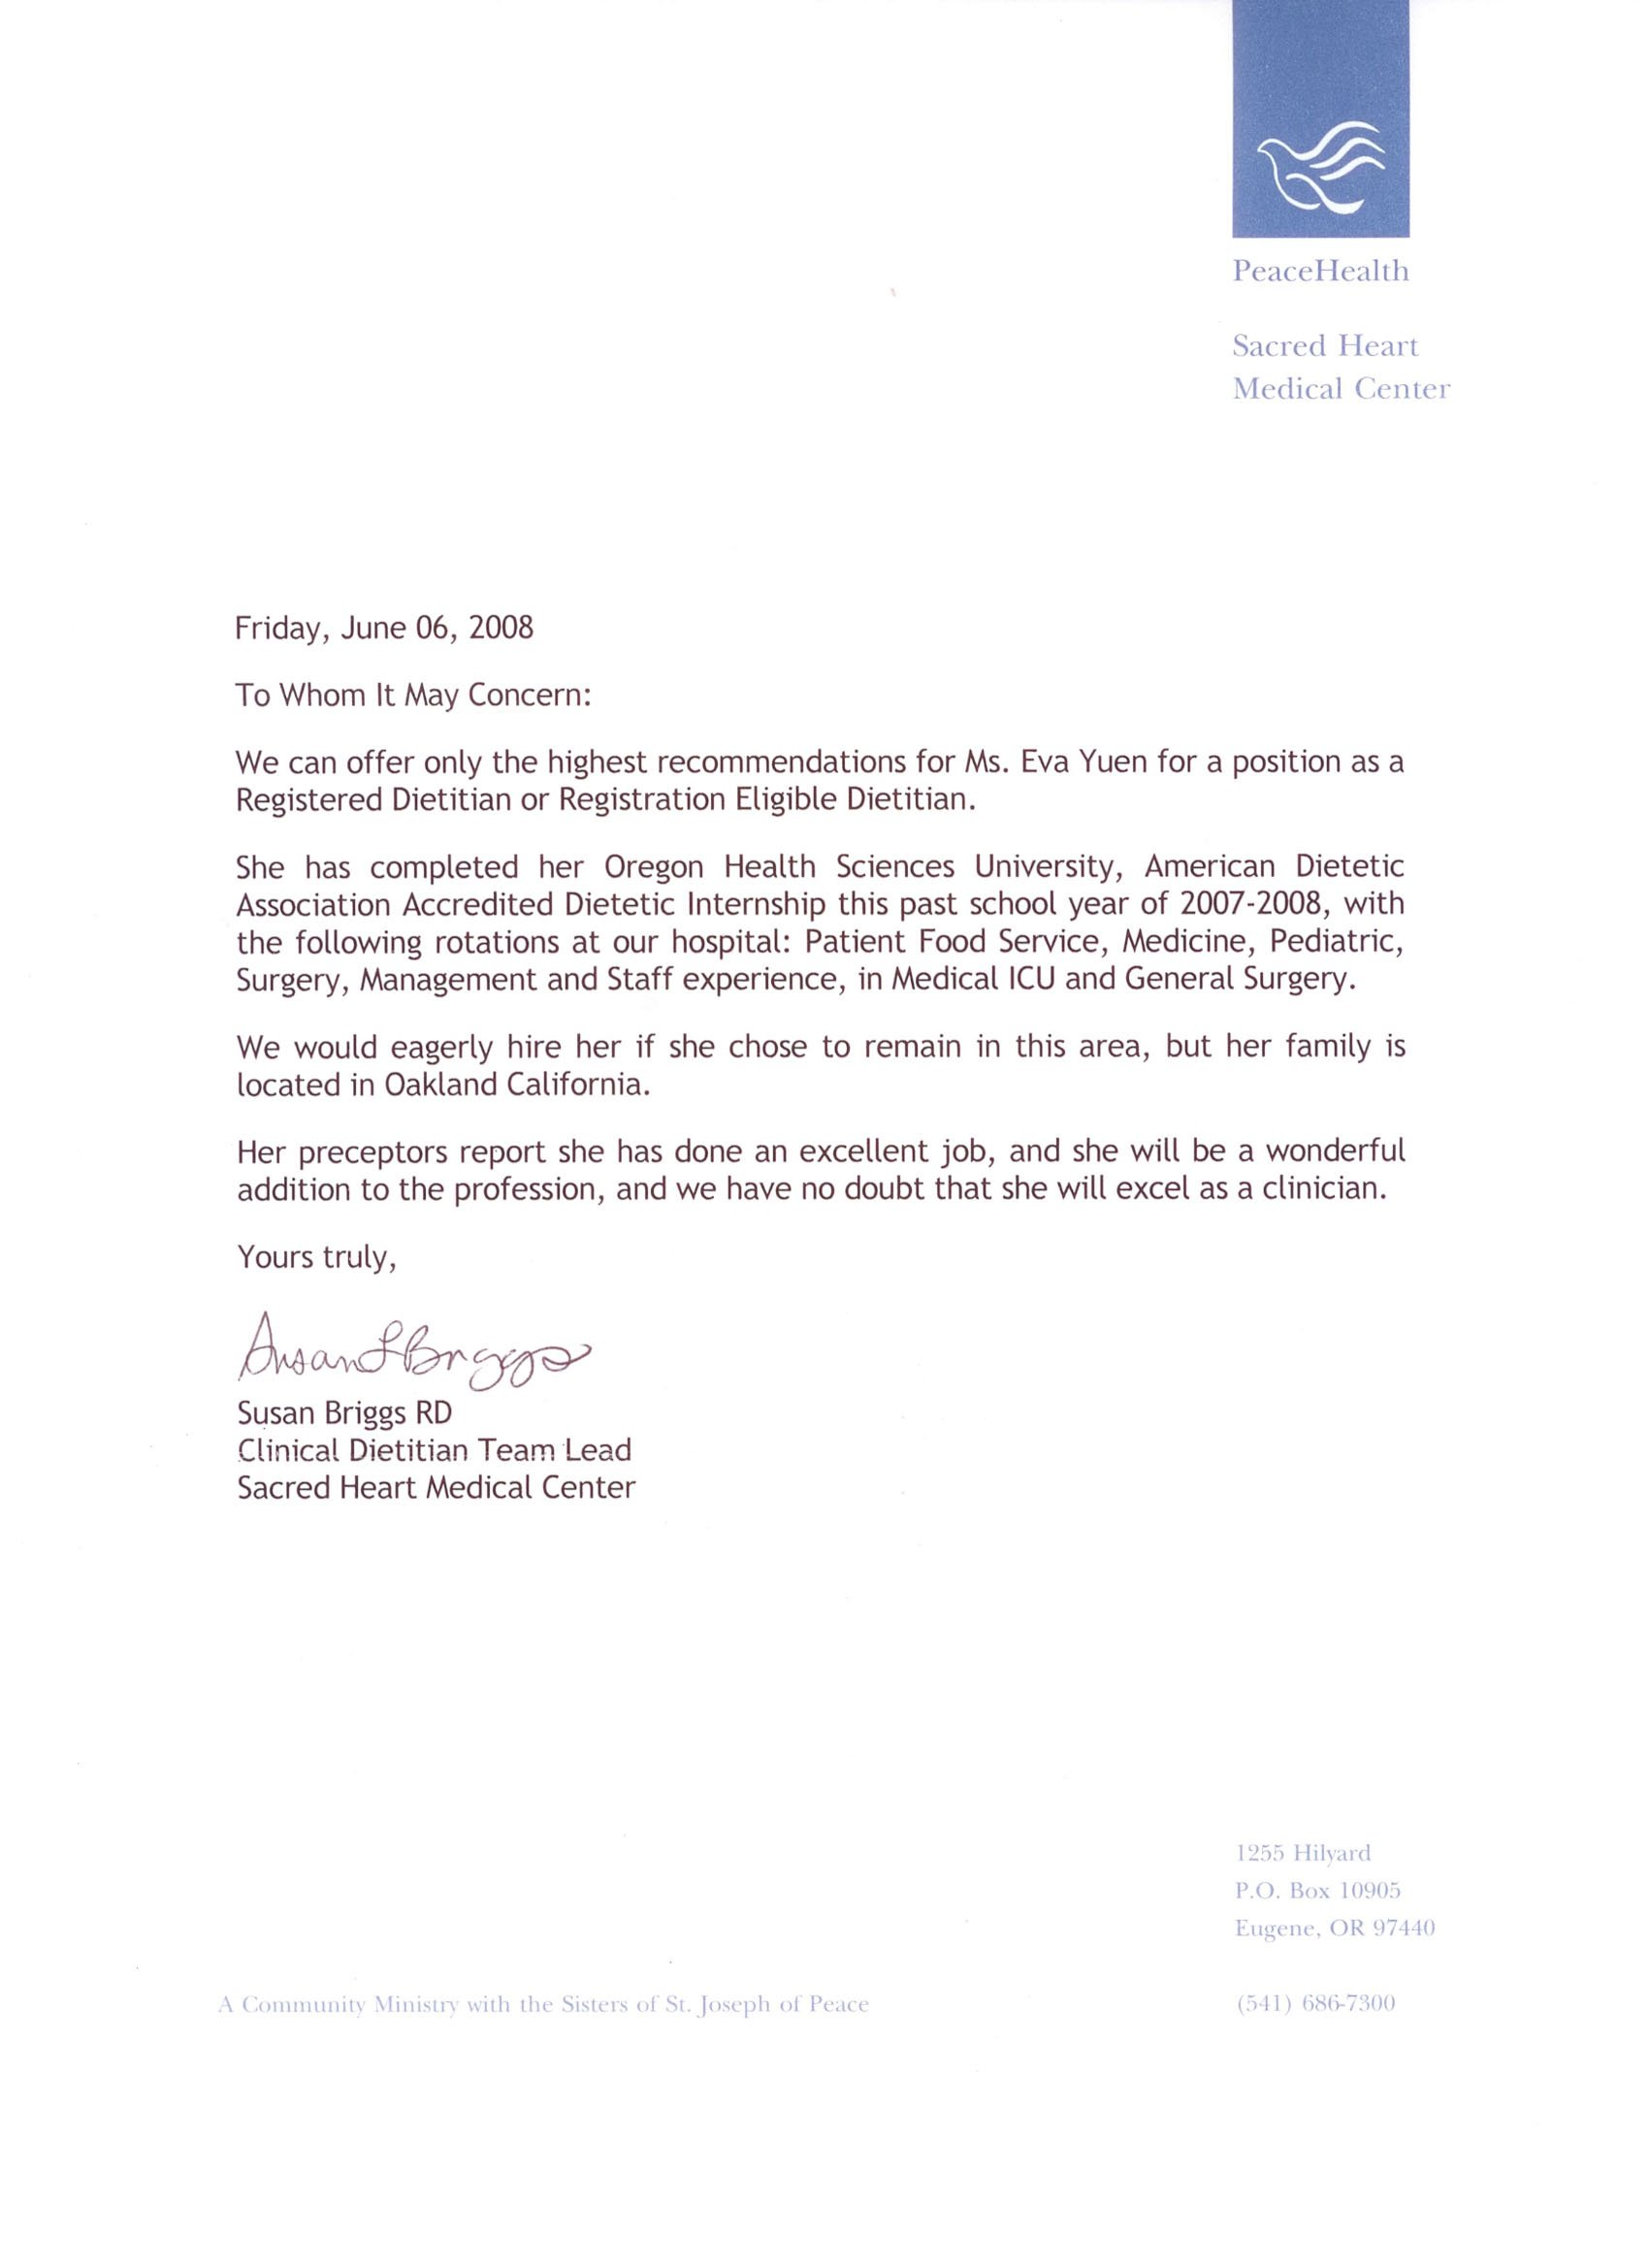 Medical Recommendation Letter | Search Results | Write Letter